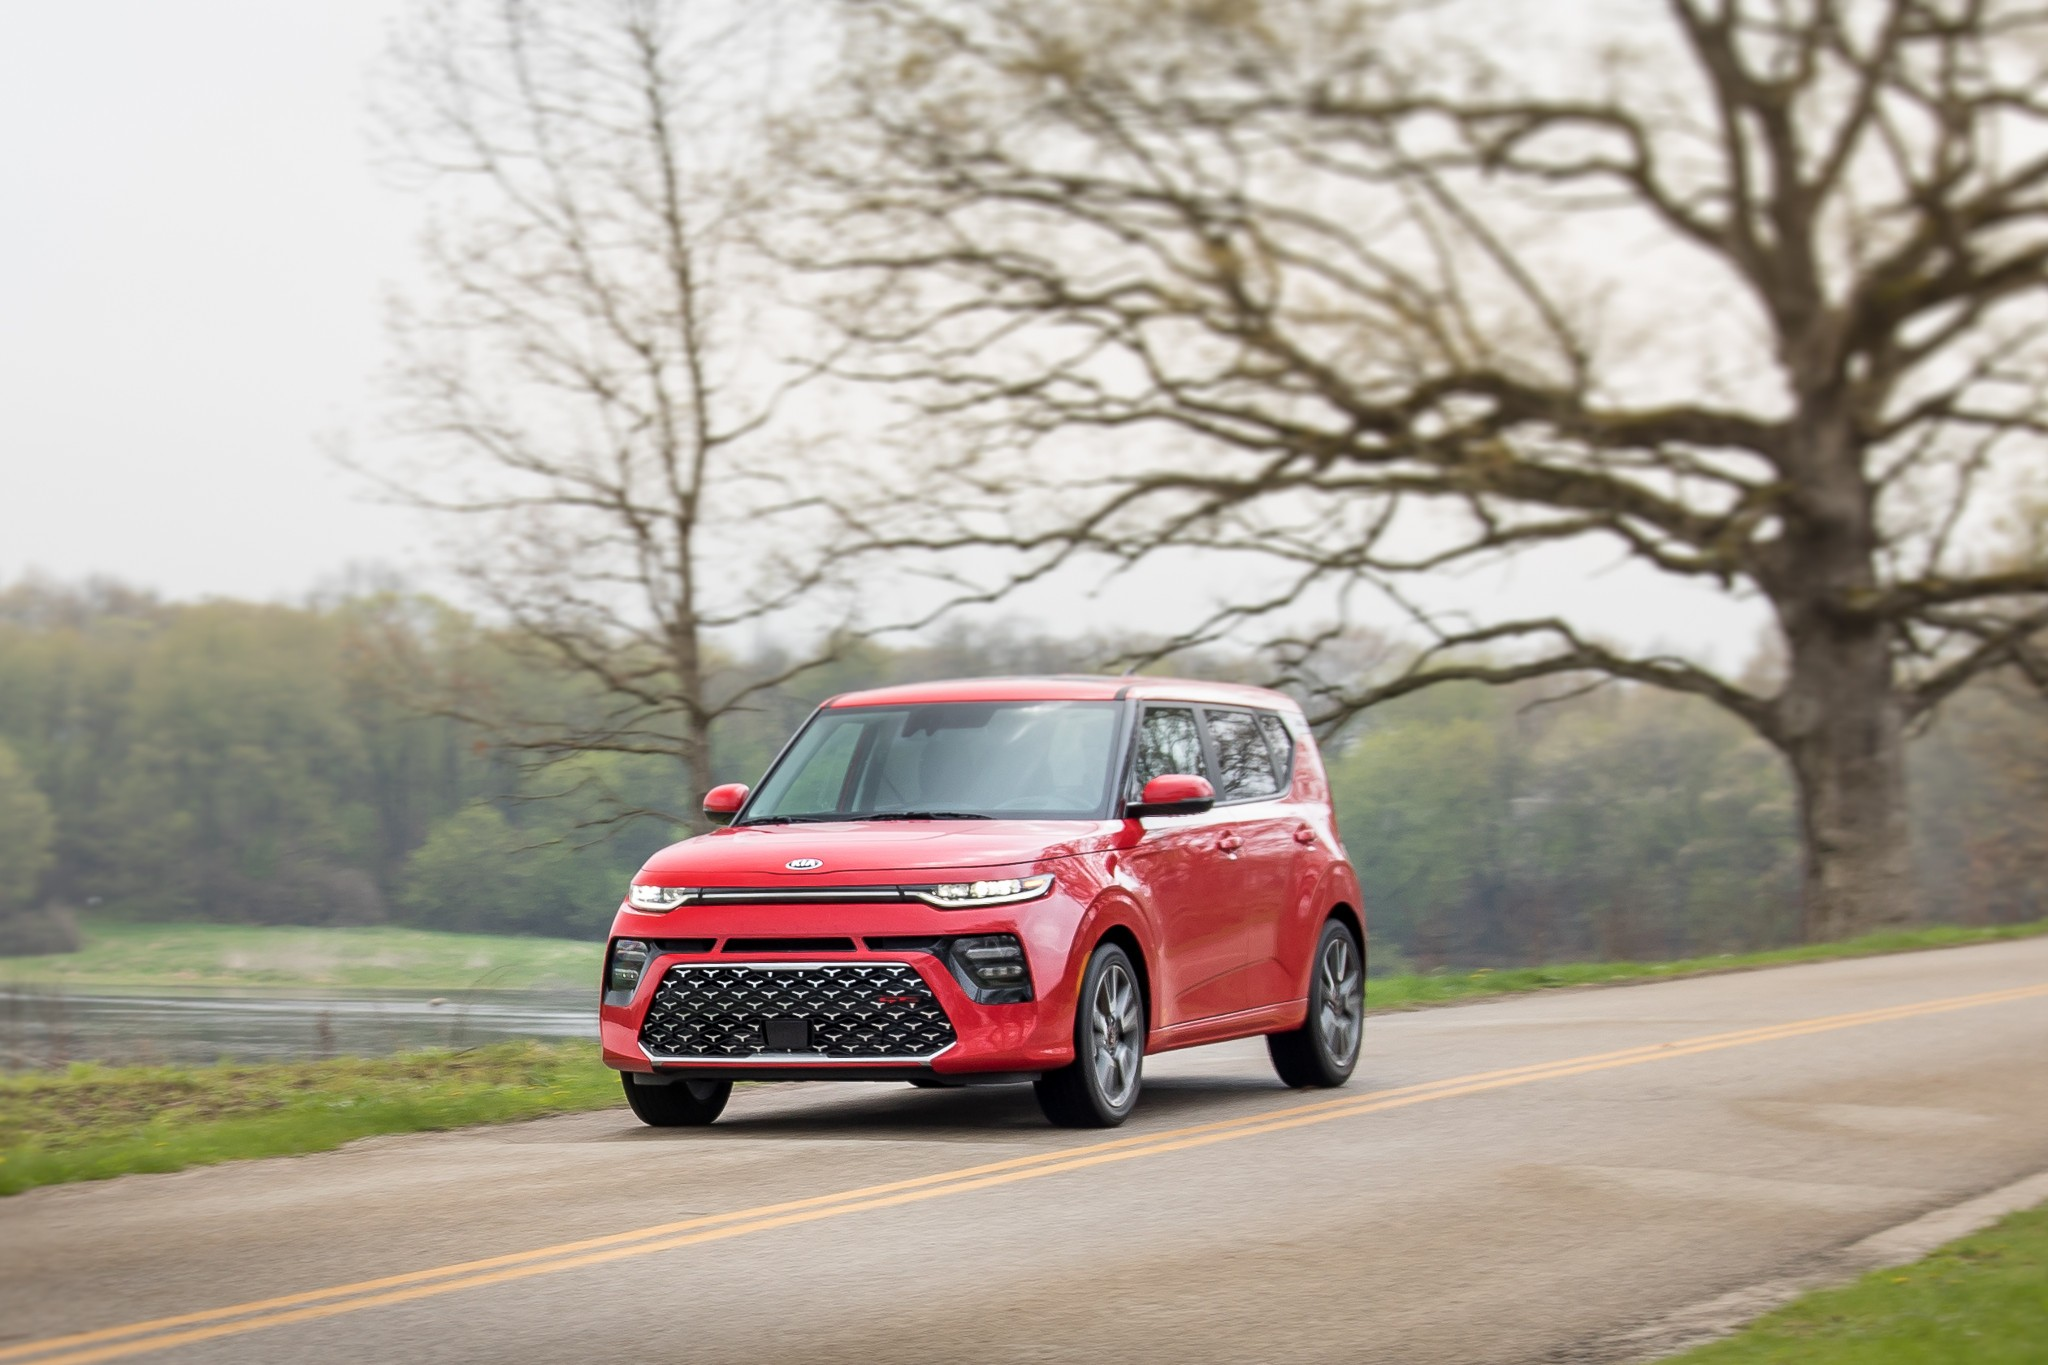 2020 Kia Soul: 11 Things We Like (and 4 Not So Much)